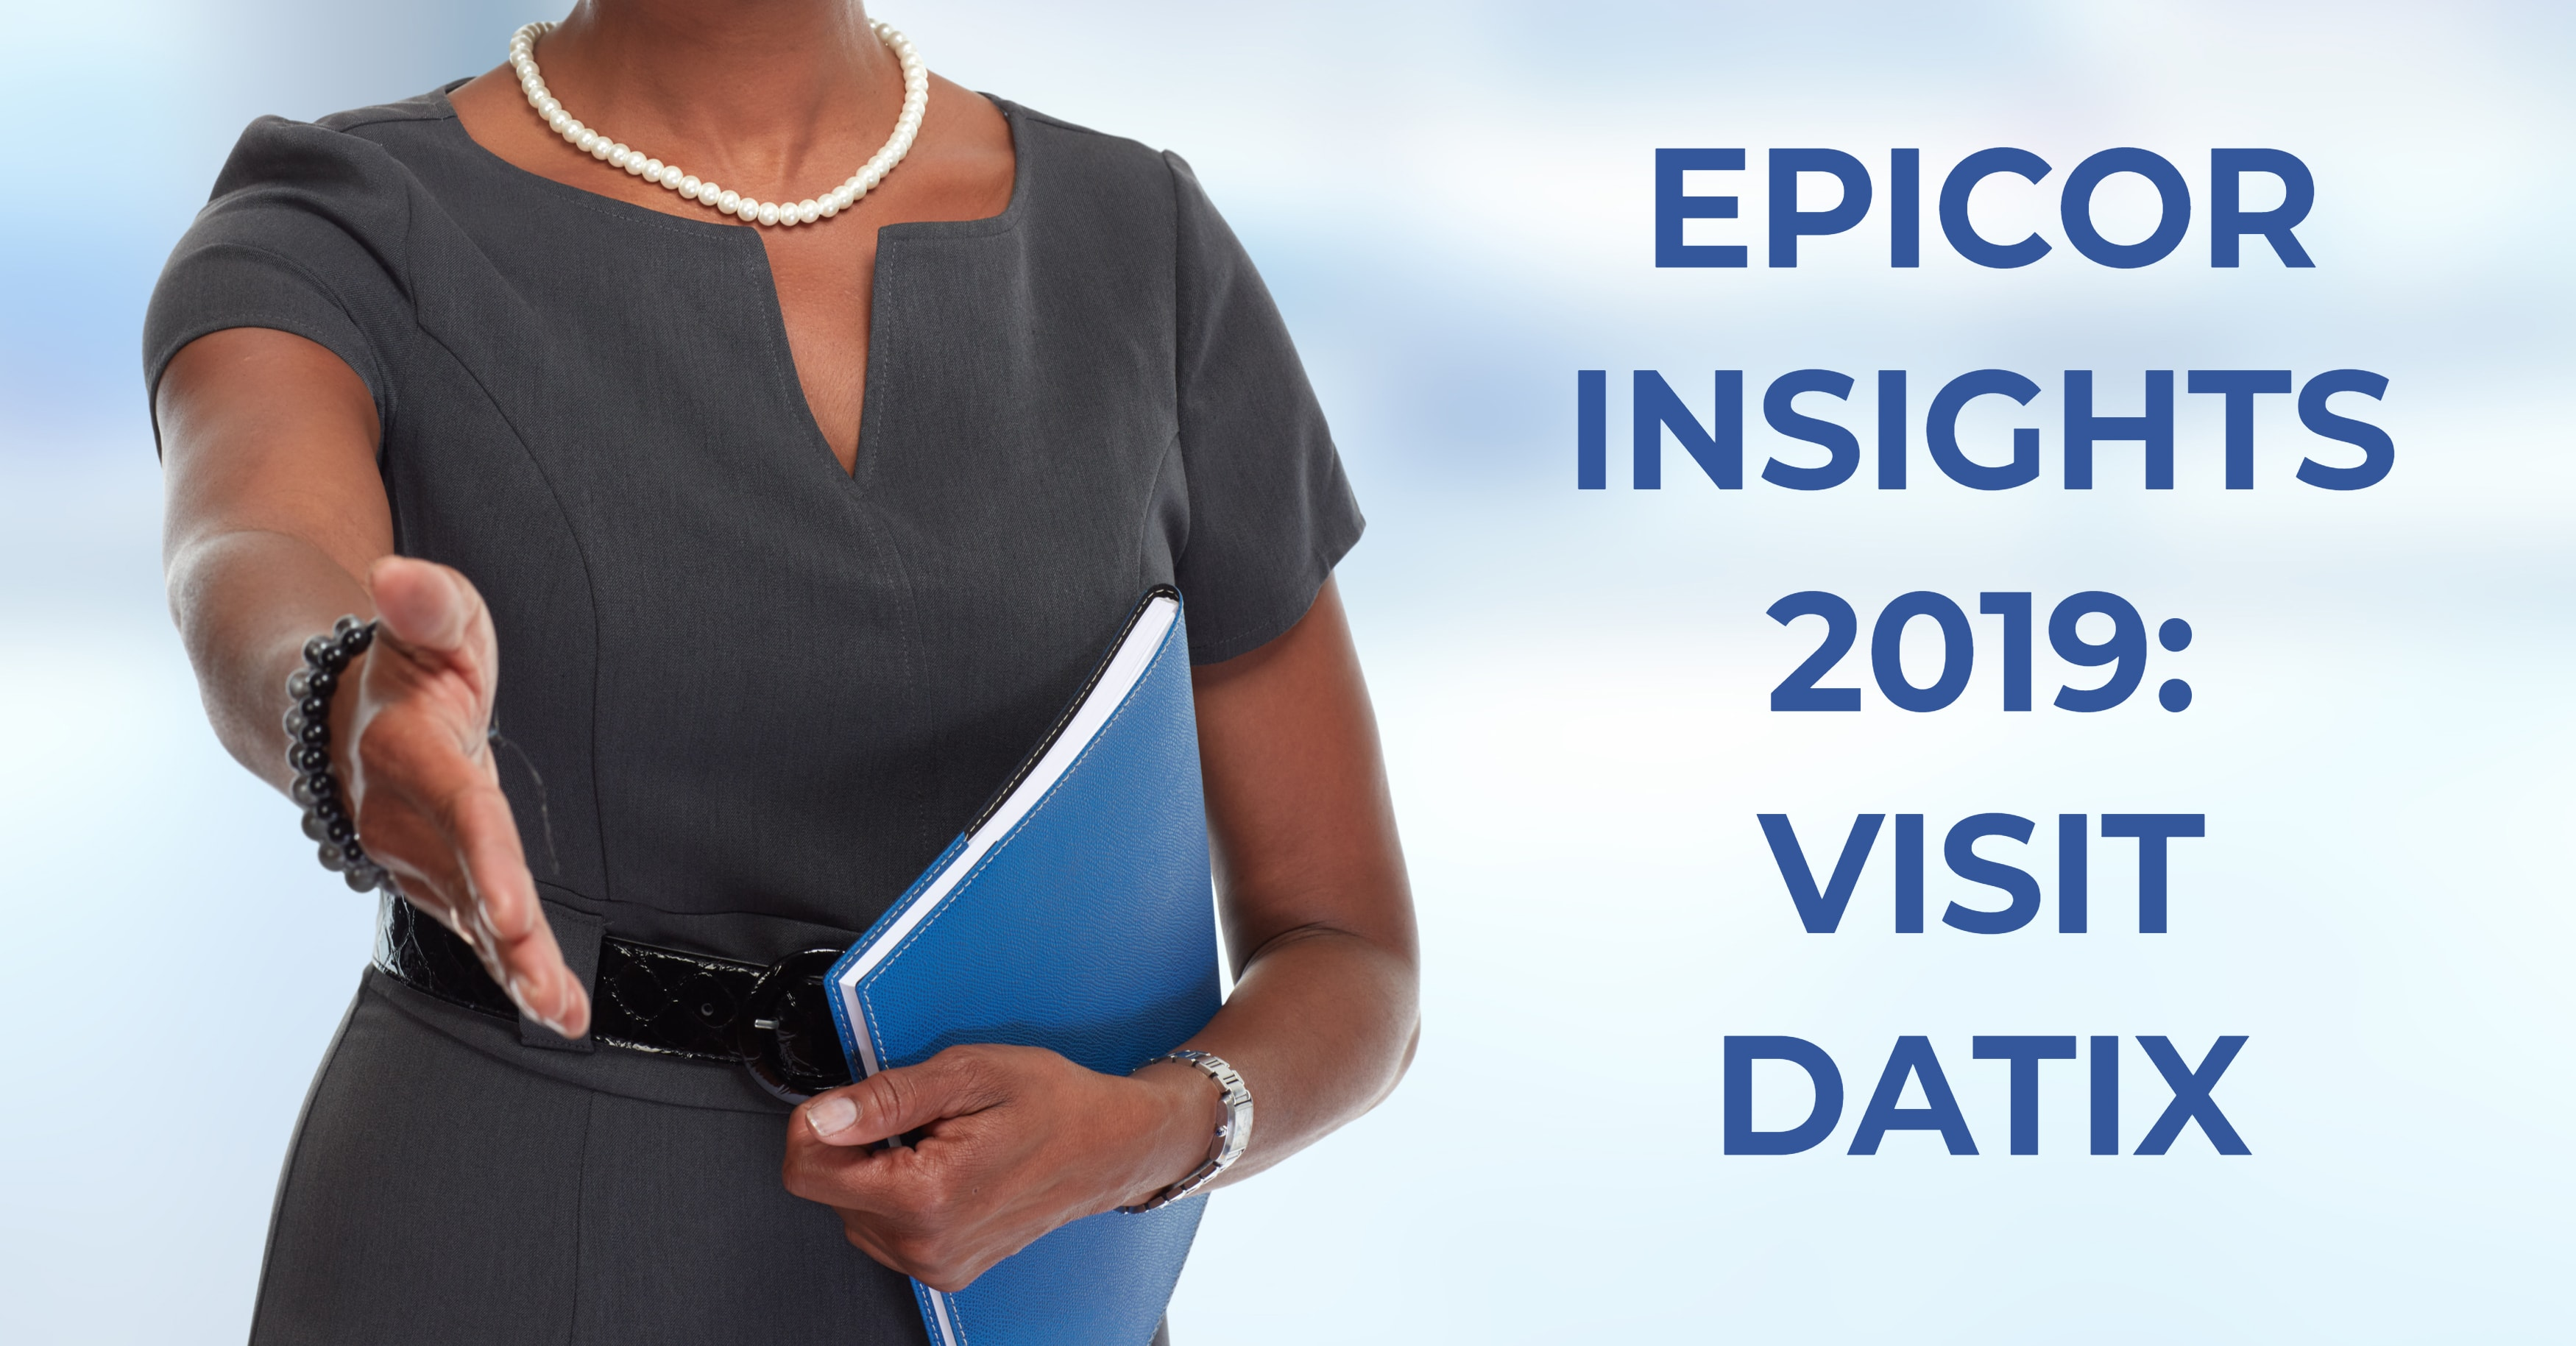 Epicor Insights 2019, Part 1: Visit the Datix Booth